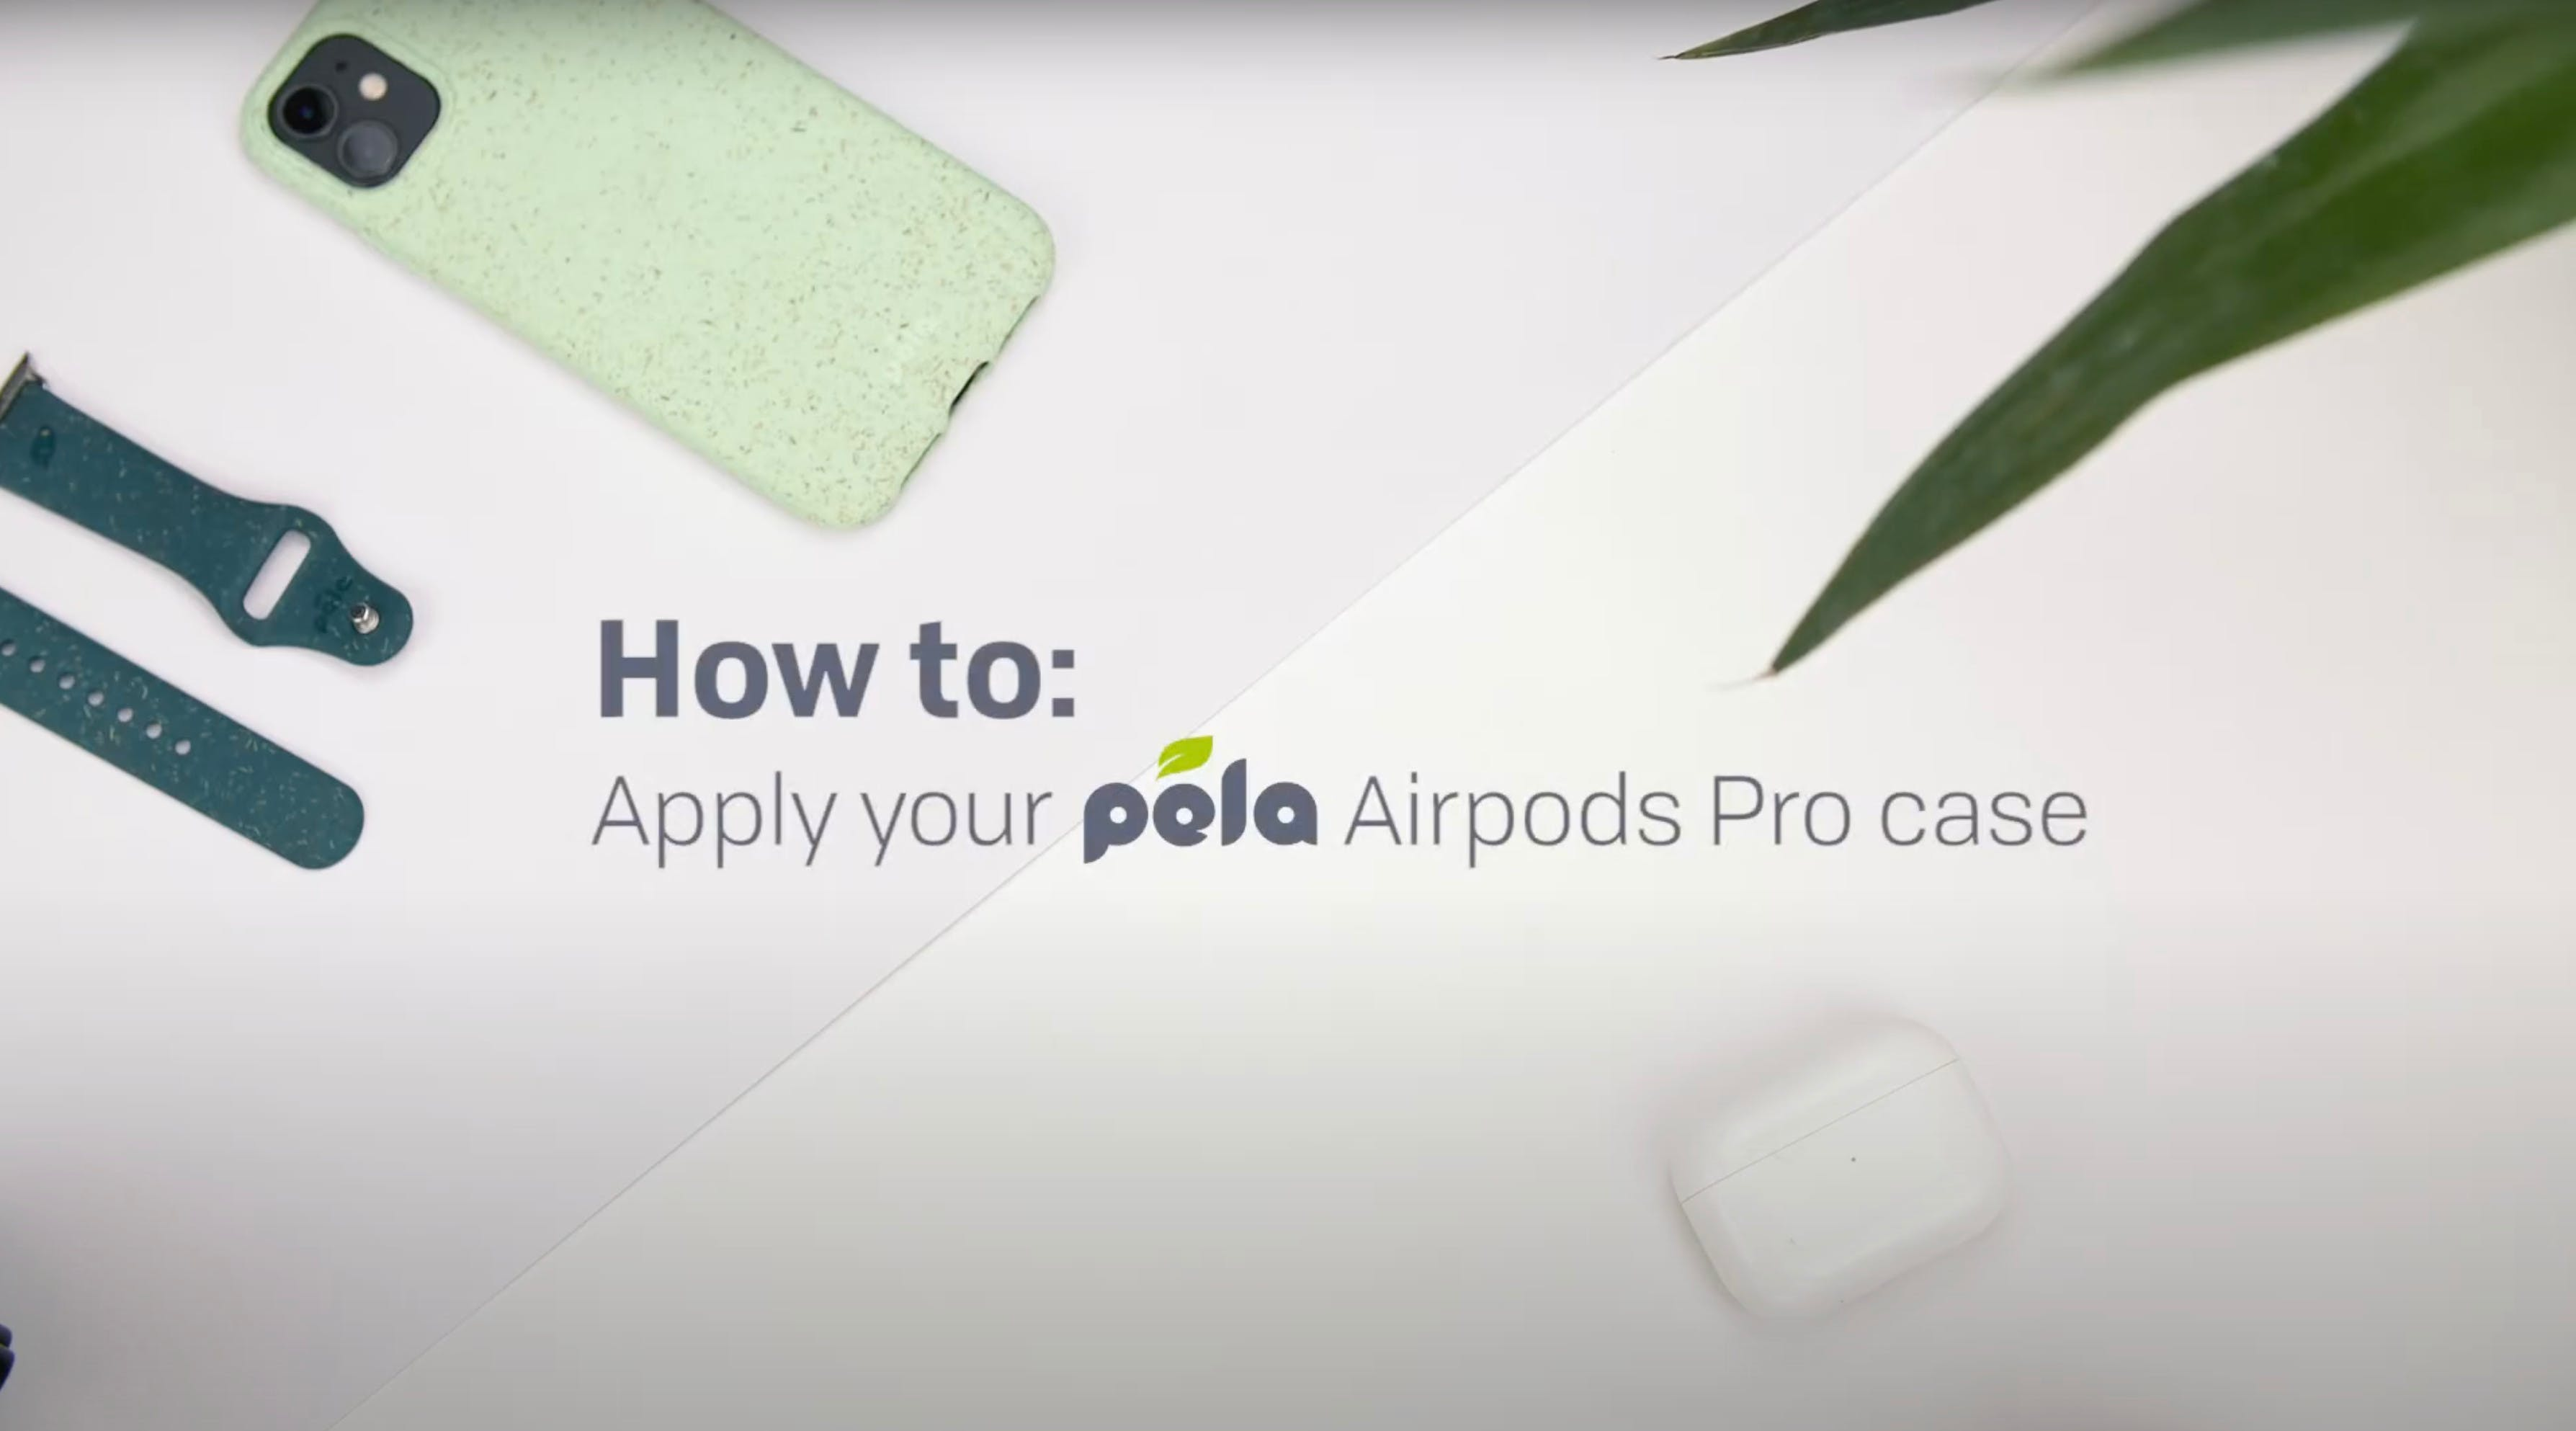 How to apply your AirPods Pro case